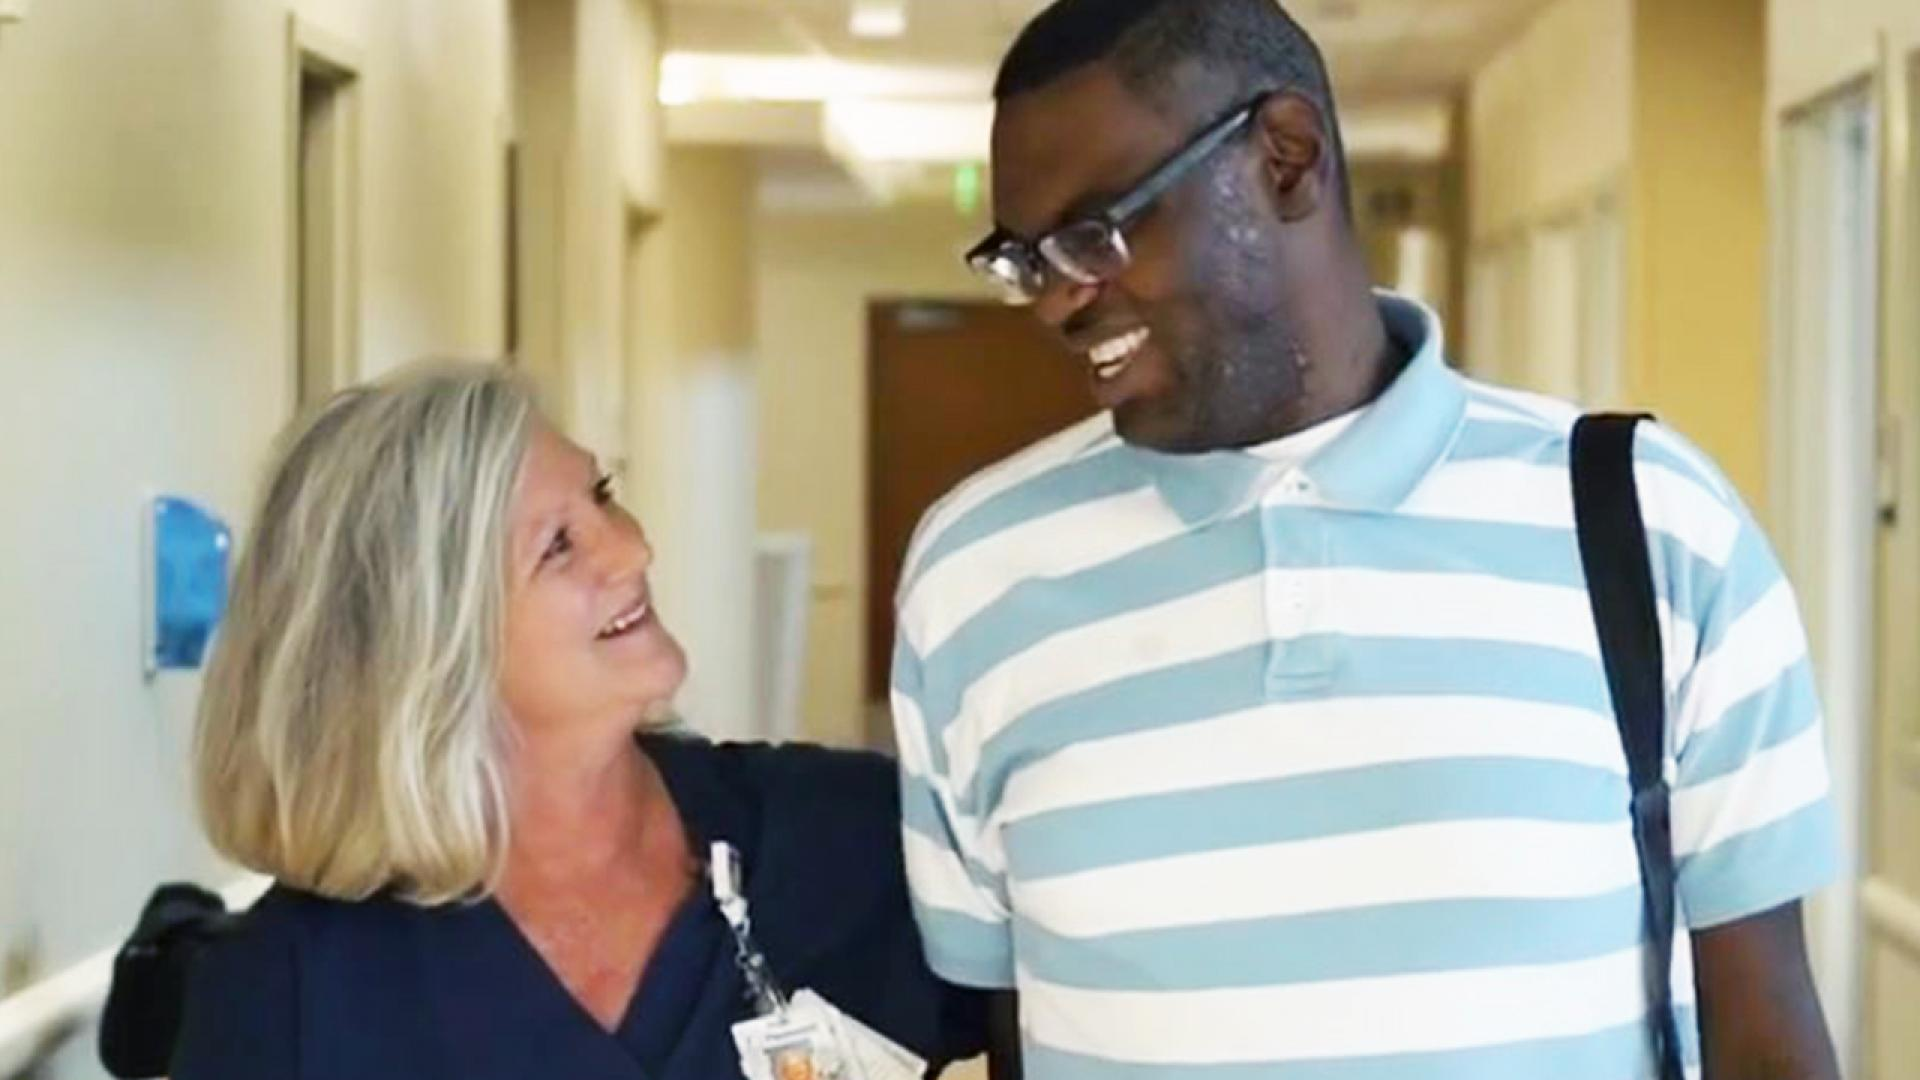 Lori Wood, a nurse at the hospital, became the legal guardian to Jonathan Pickard, who needed someone to take care of him in order to get his transplant.